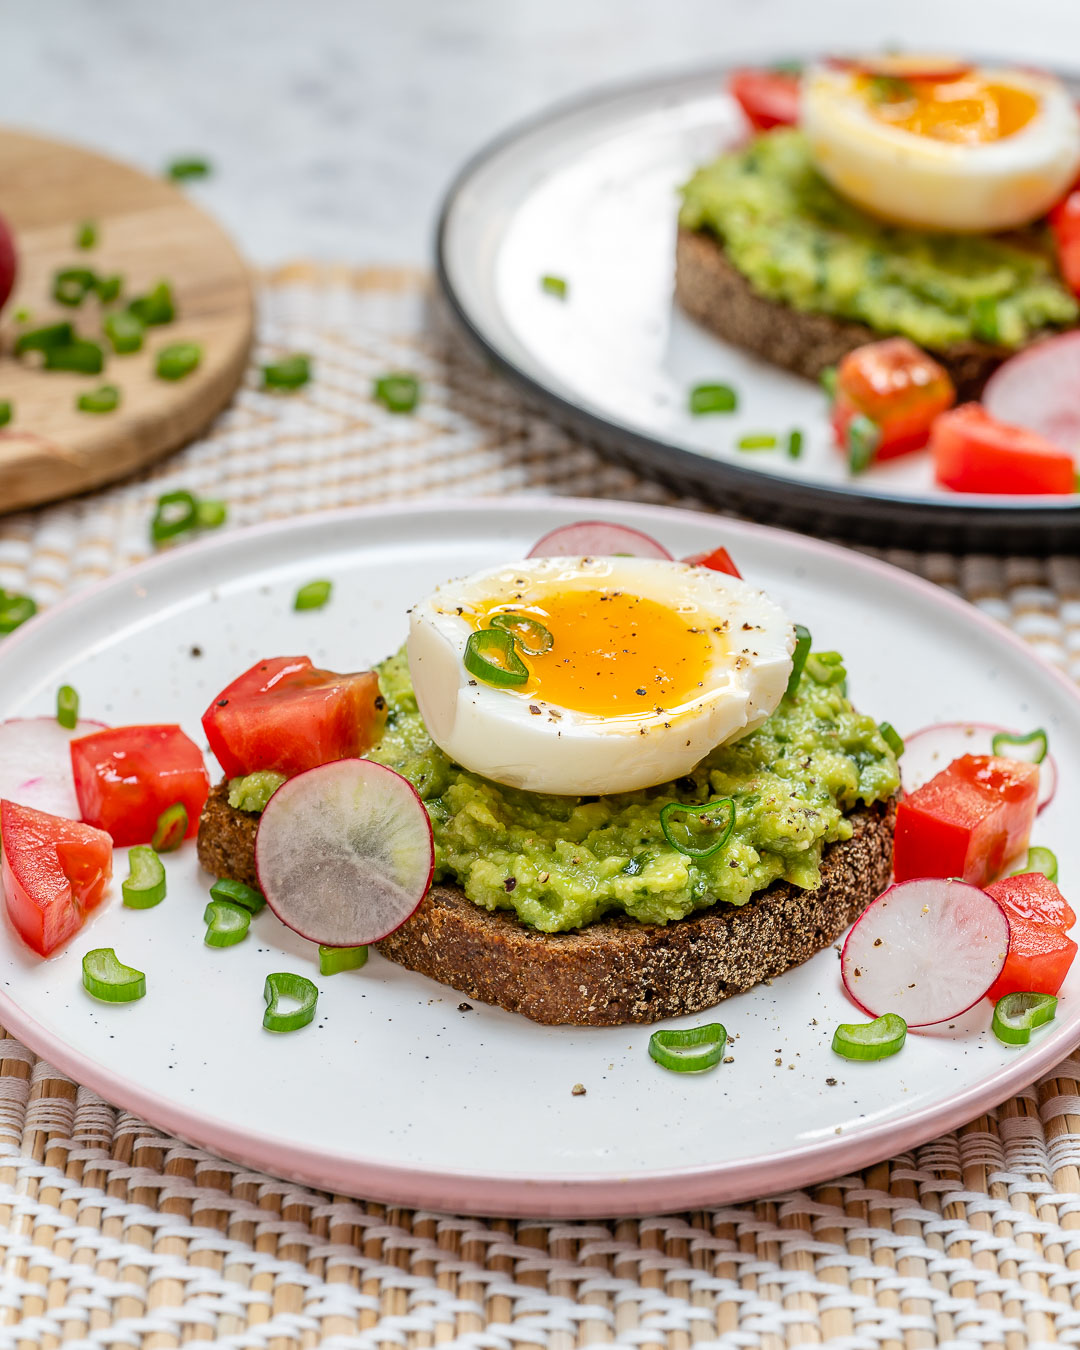 Soft Boiled Egg Avocado Toast Healthy Breakfast